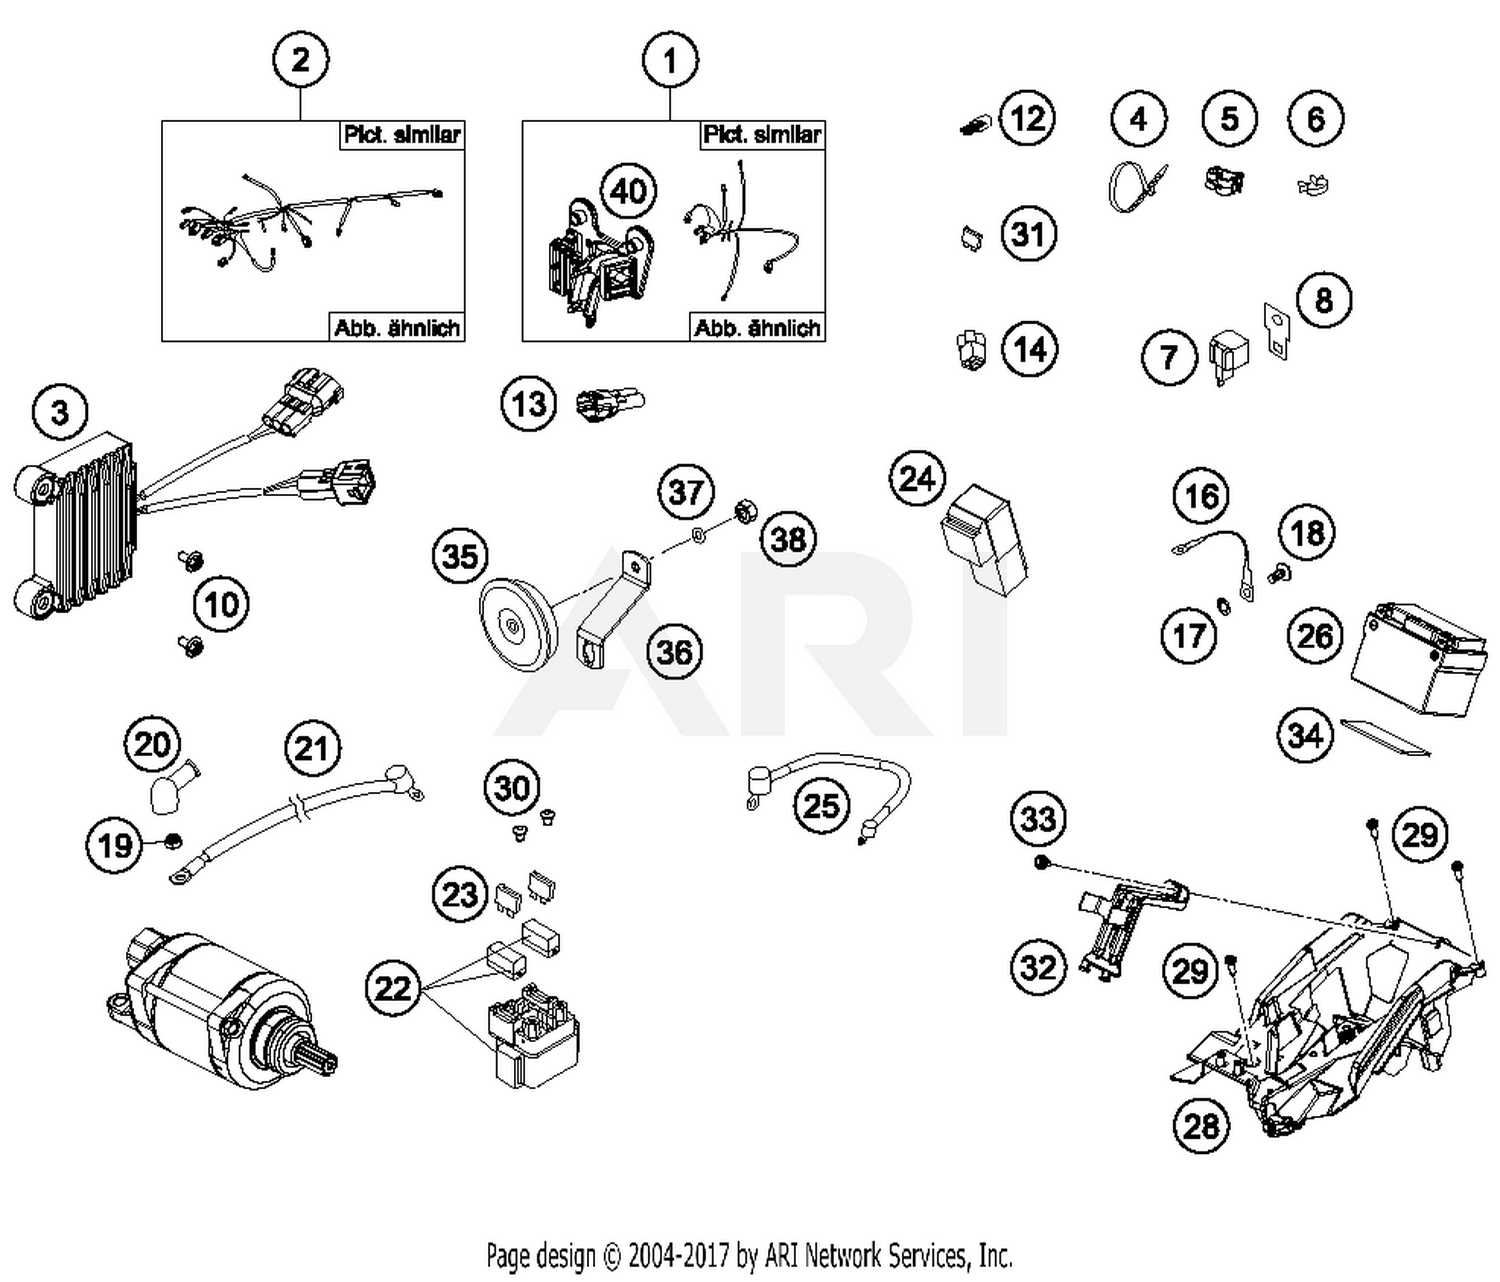 [DIAGRAM] Lexus Is200 Headlight Wiring Diagram FULL